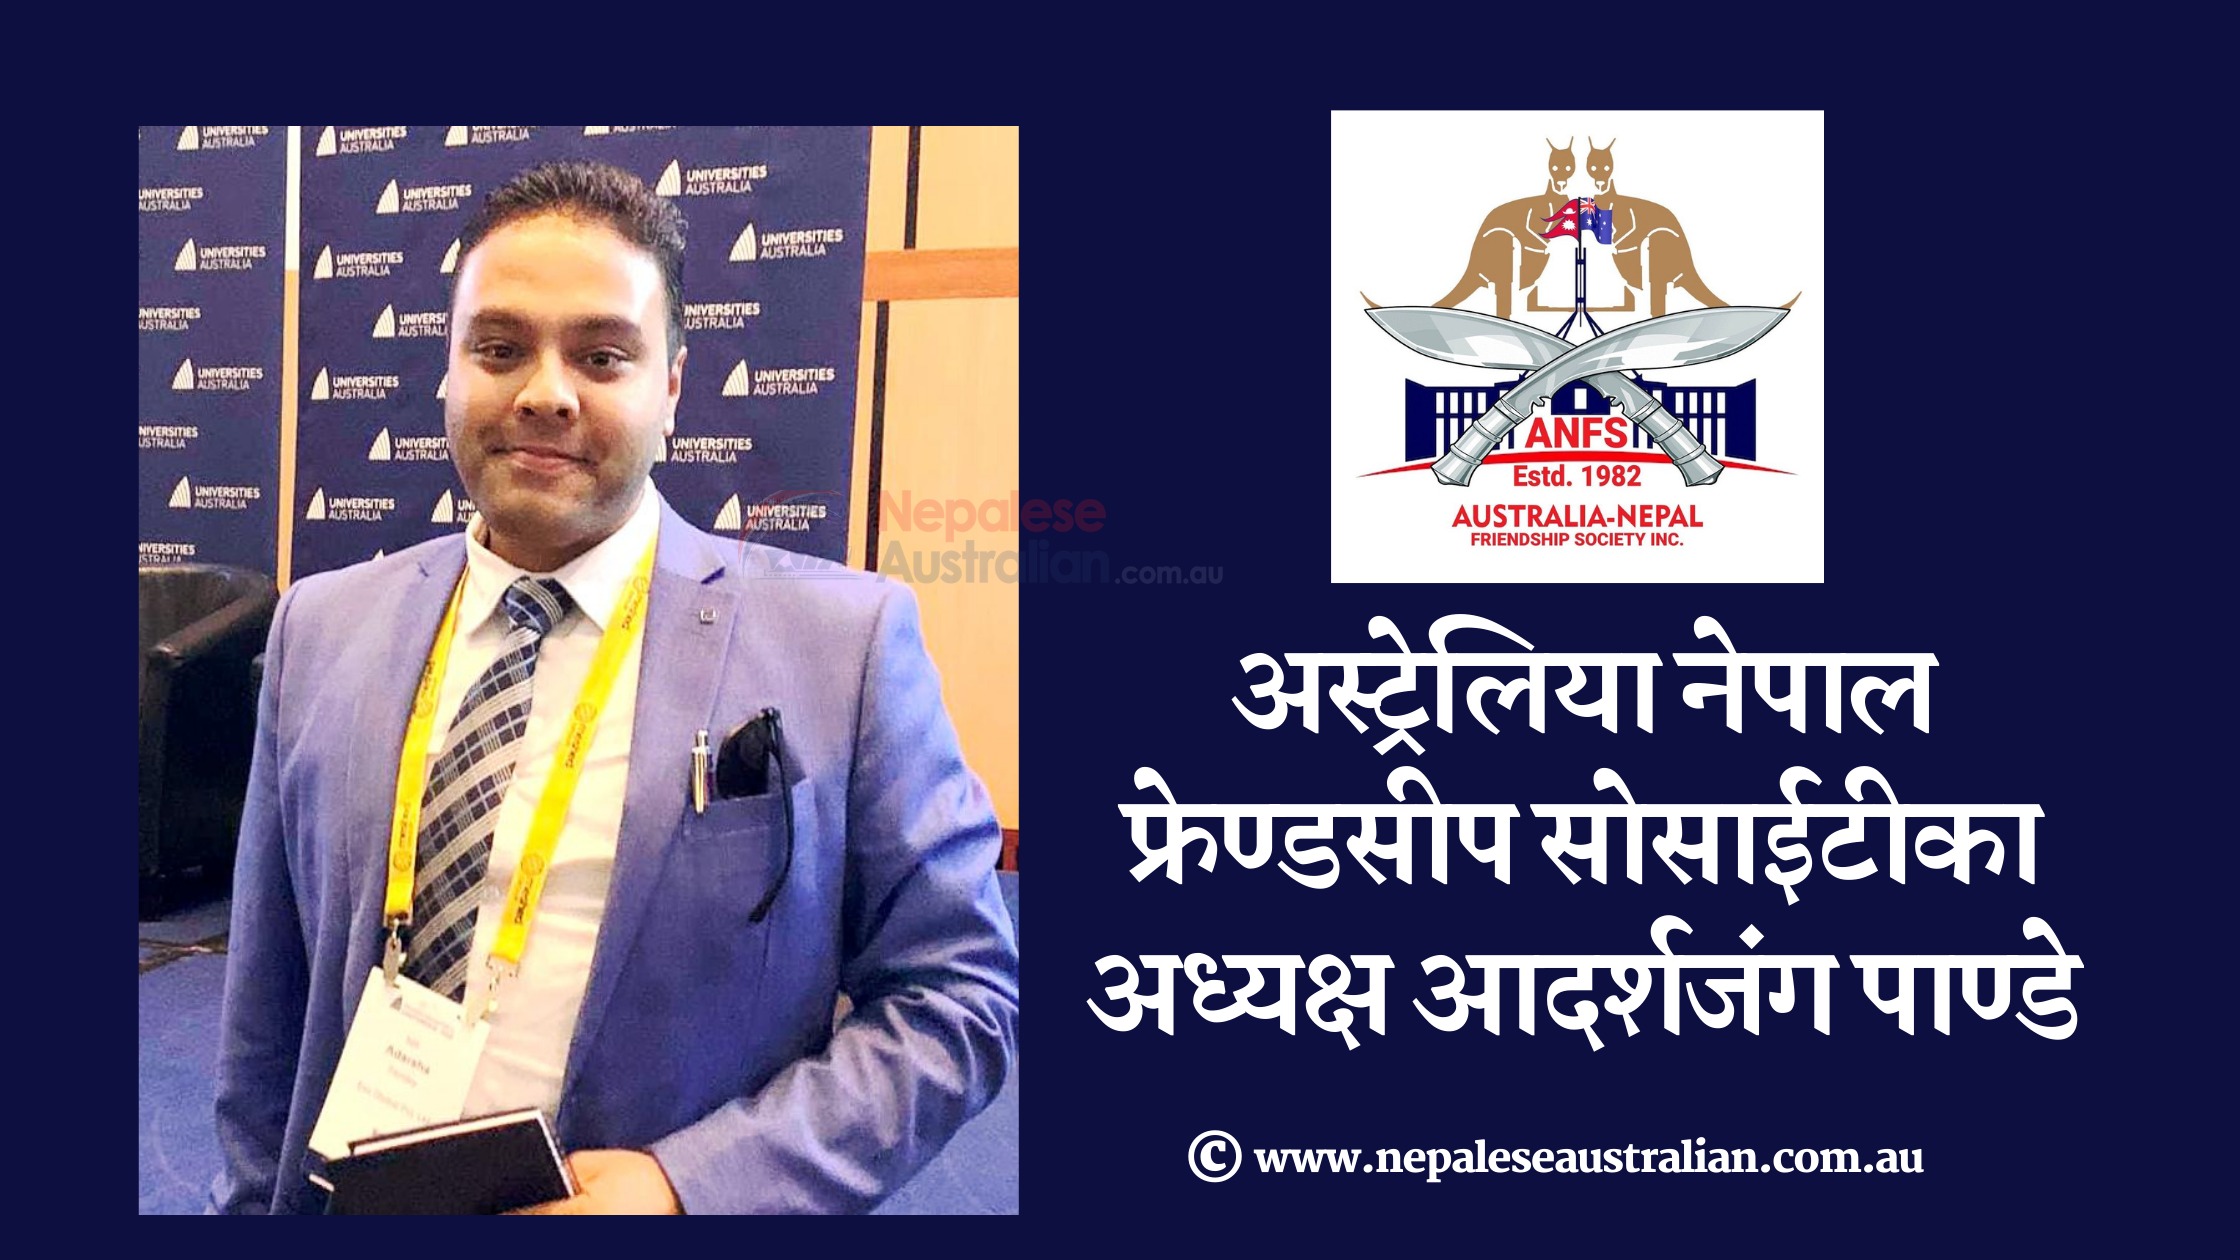 Adarsha Jung Pande newly elected president of Nepal Australia Friendship Society